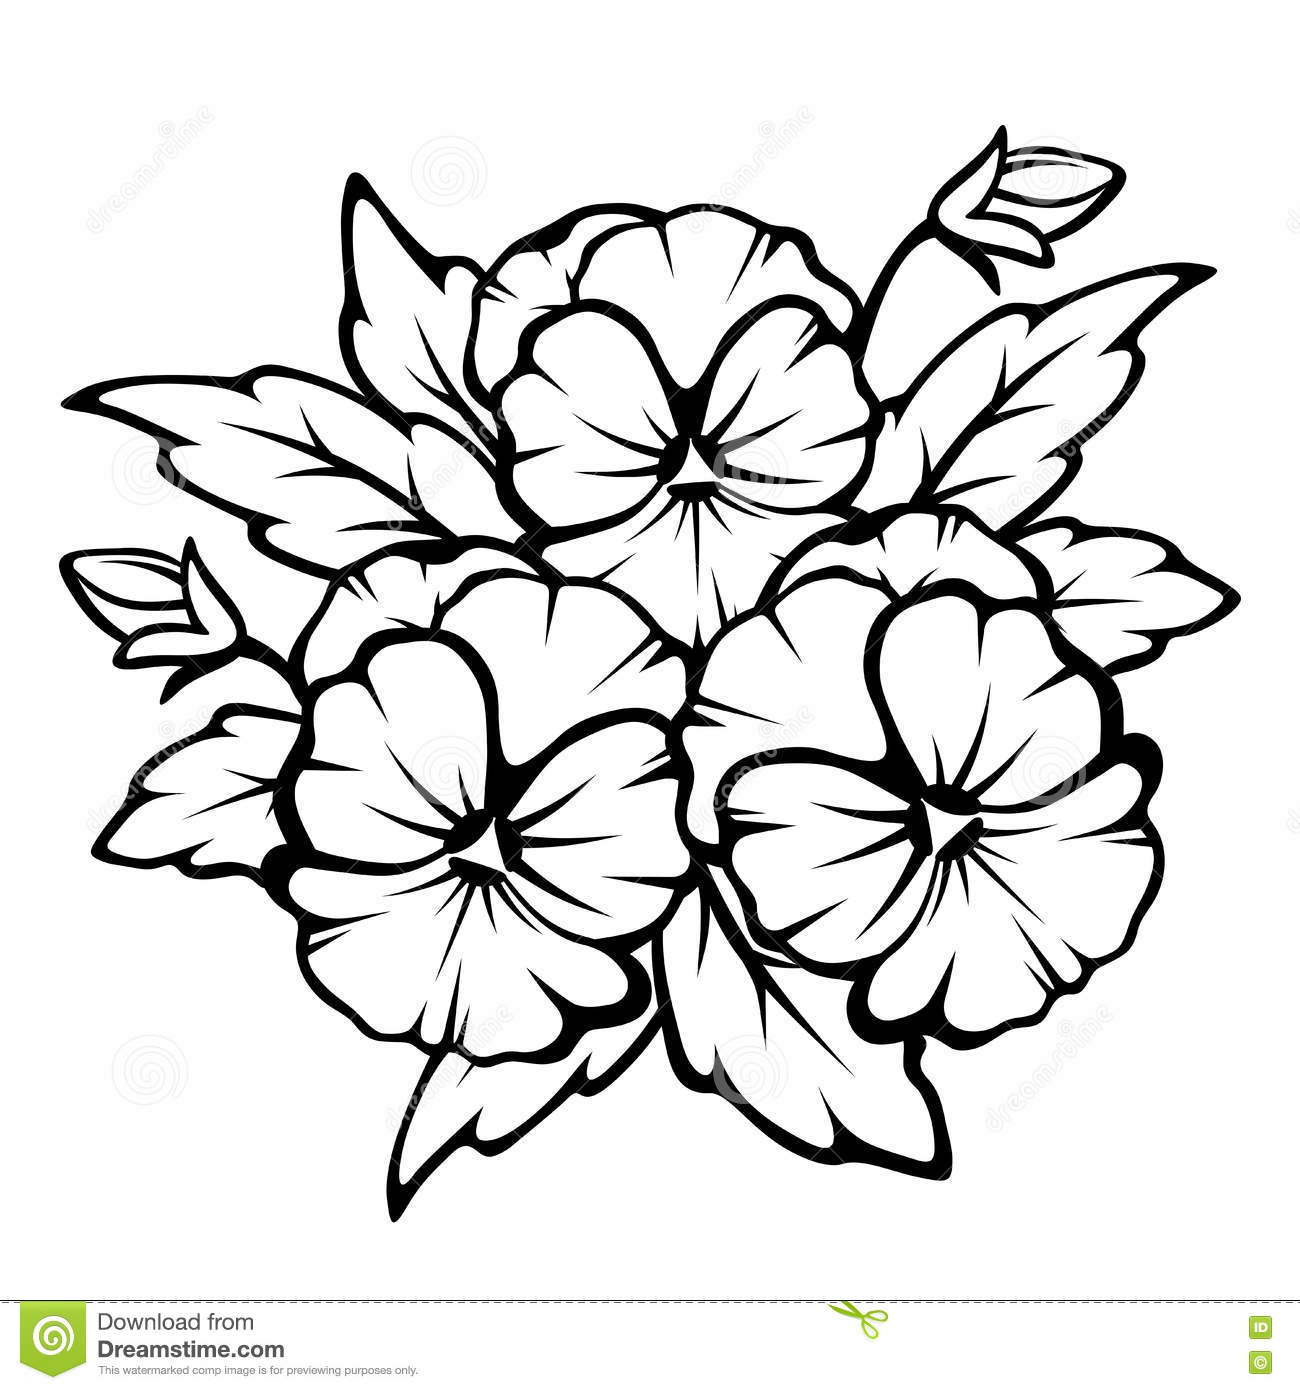 Pansy Flowers Black Contours Vector Illustration Stock